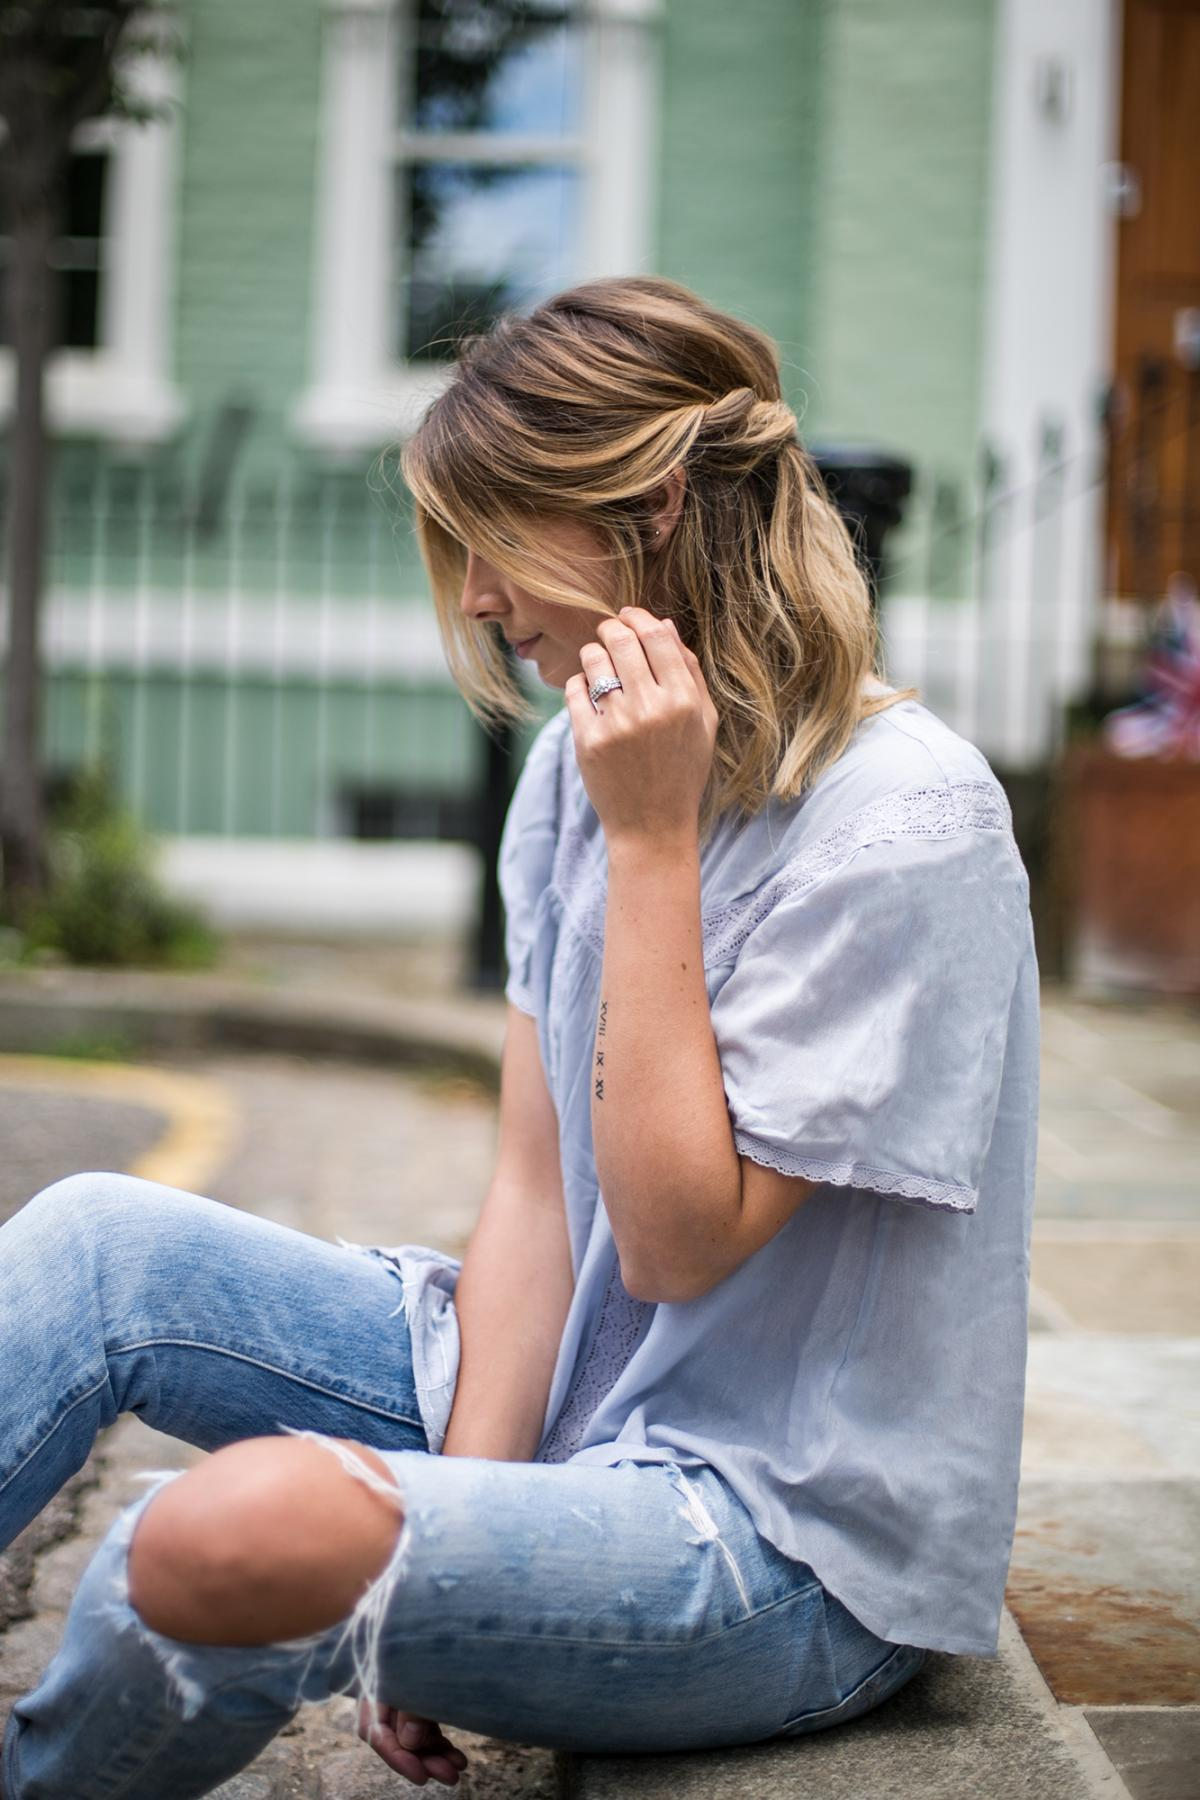 summer twist hair style, long bob, lob, blonde balayage hair, shoulder length hair style, ripped jeans, pale blue boho top